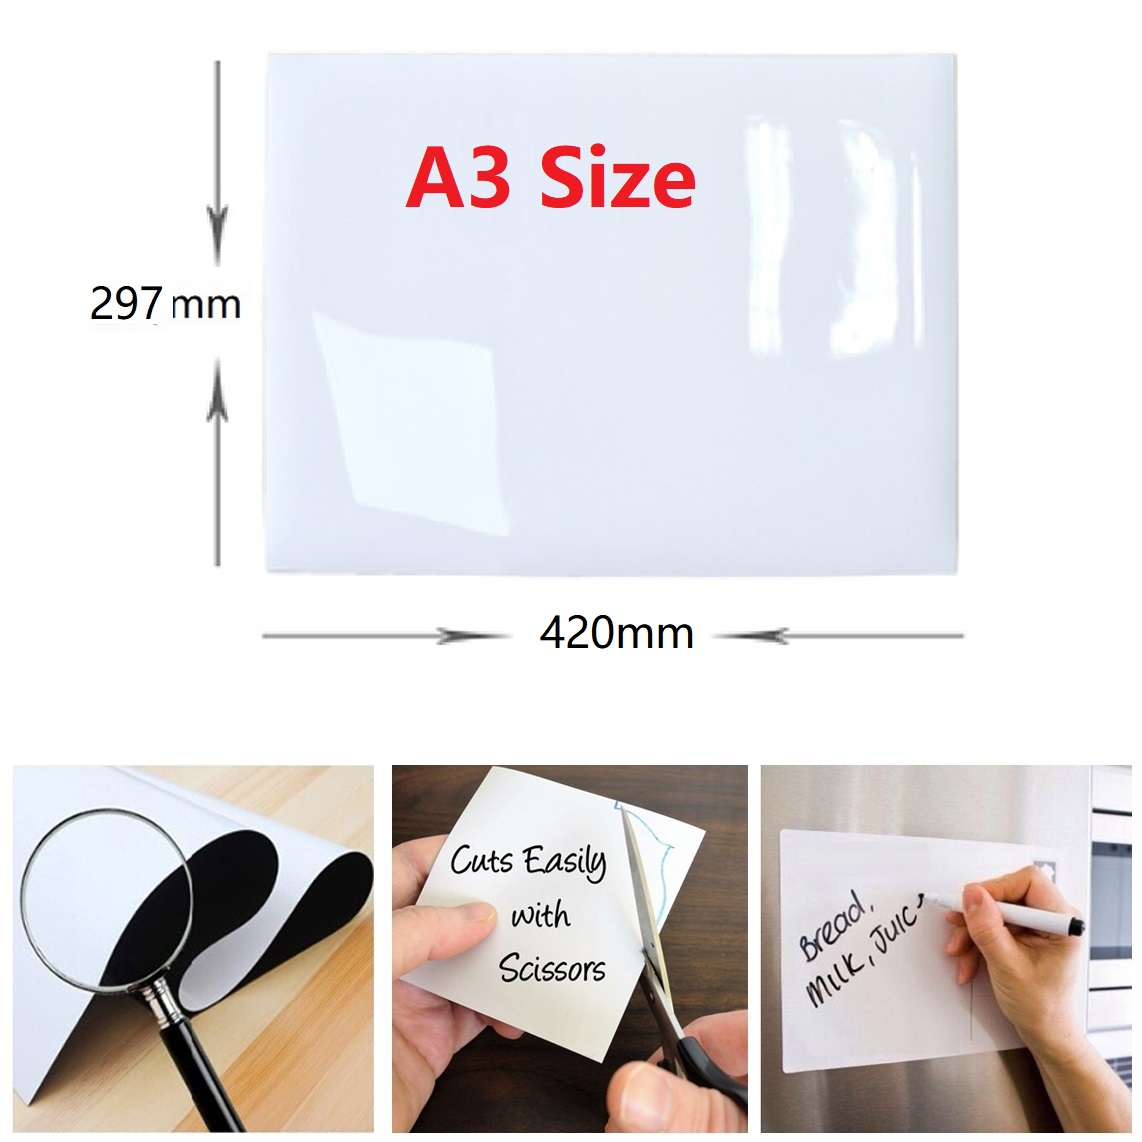 Image 3 - A3 Size 297mm X 420mm Fridge Reminder Magnetic Dry WIPE Whiteboard Sheet for Refrigerator Sticker Markers Eraser Big Note Board-in Fridge Magnets from Home & Garden